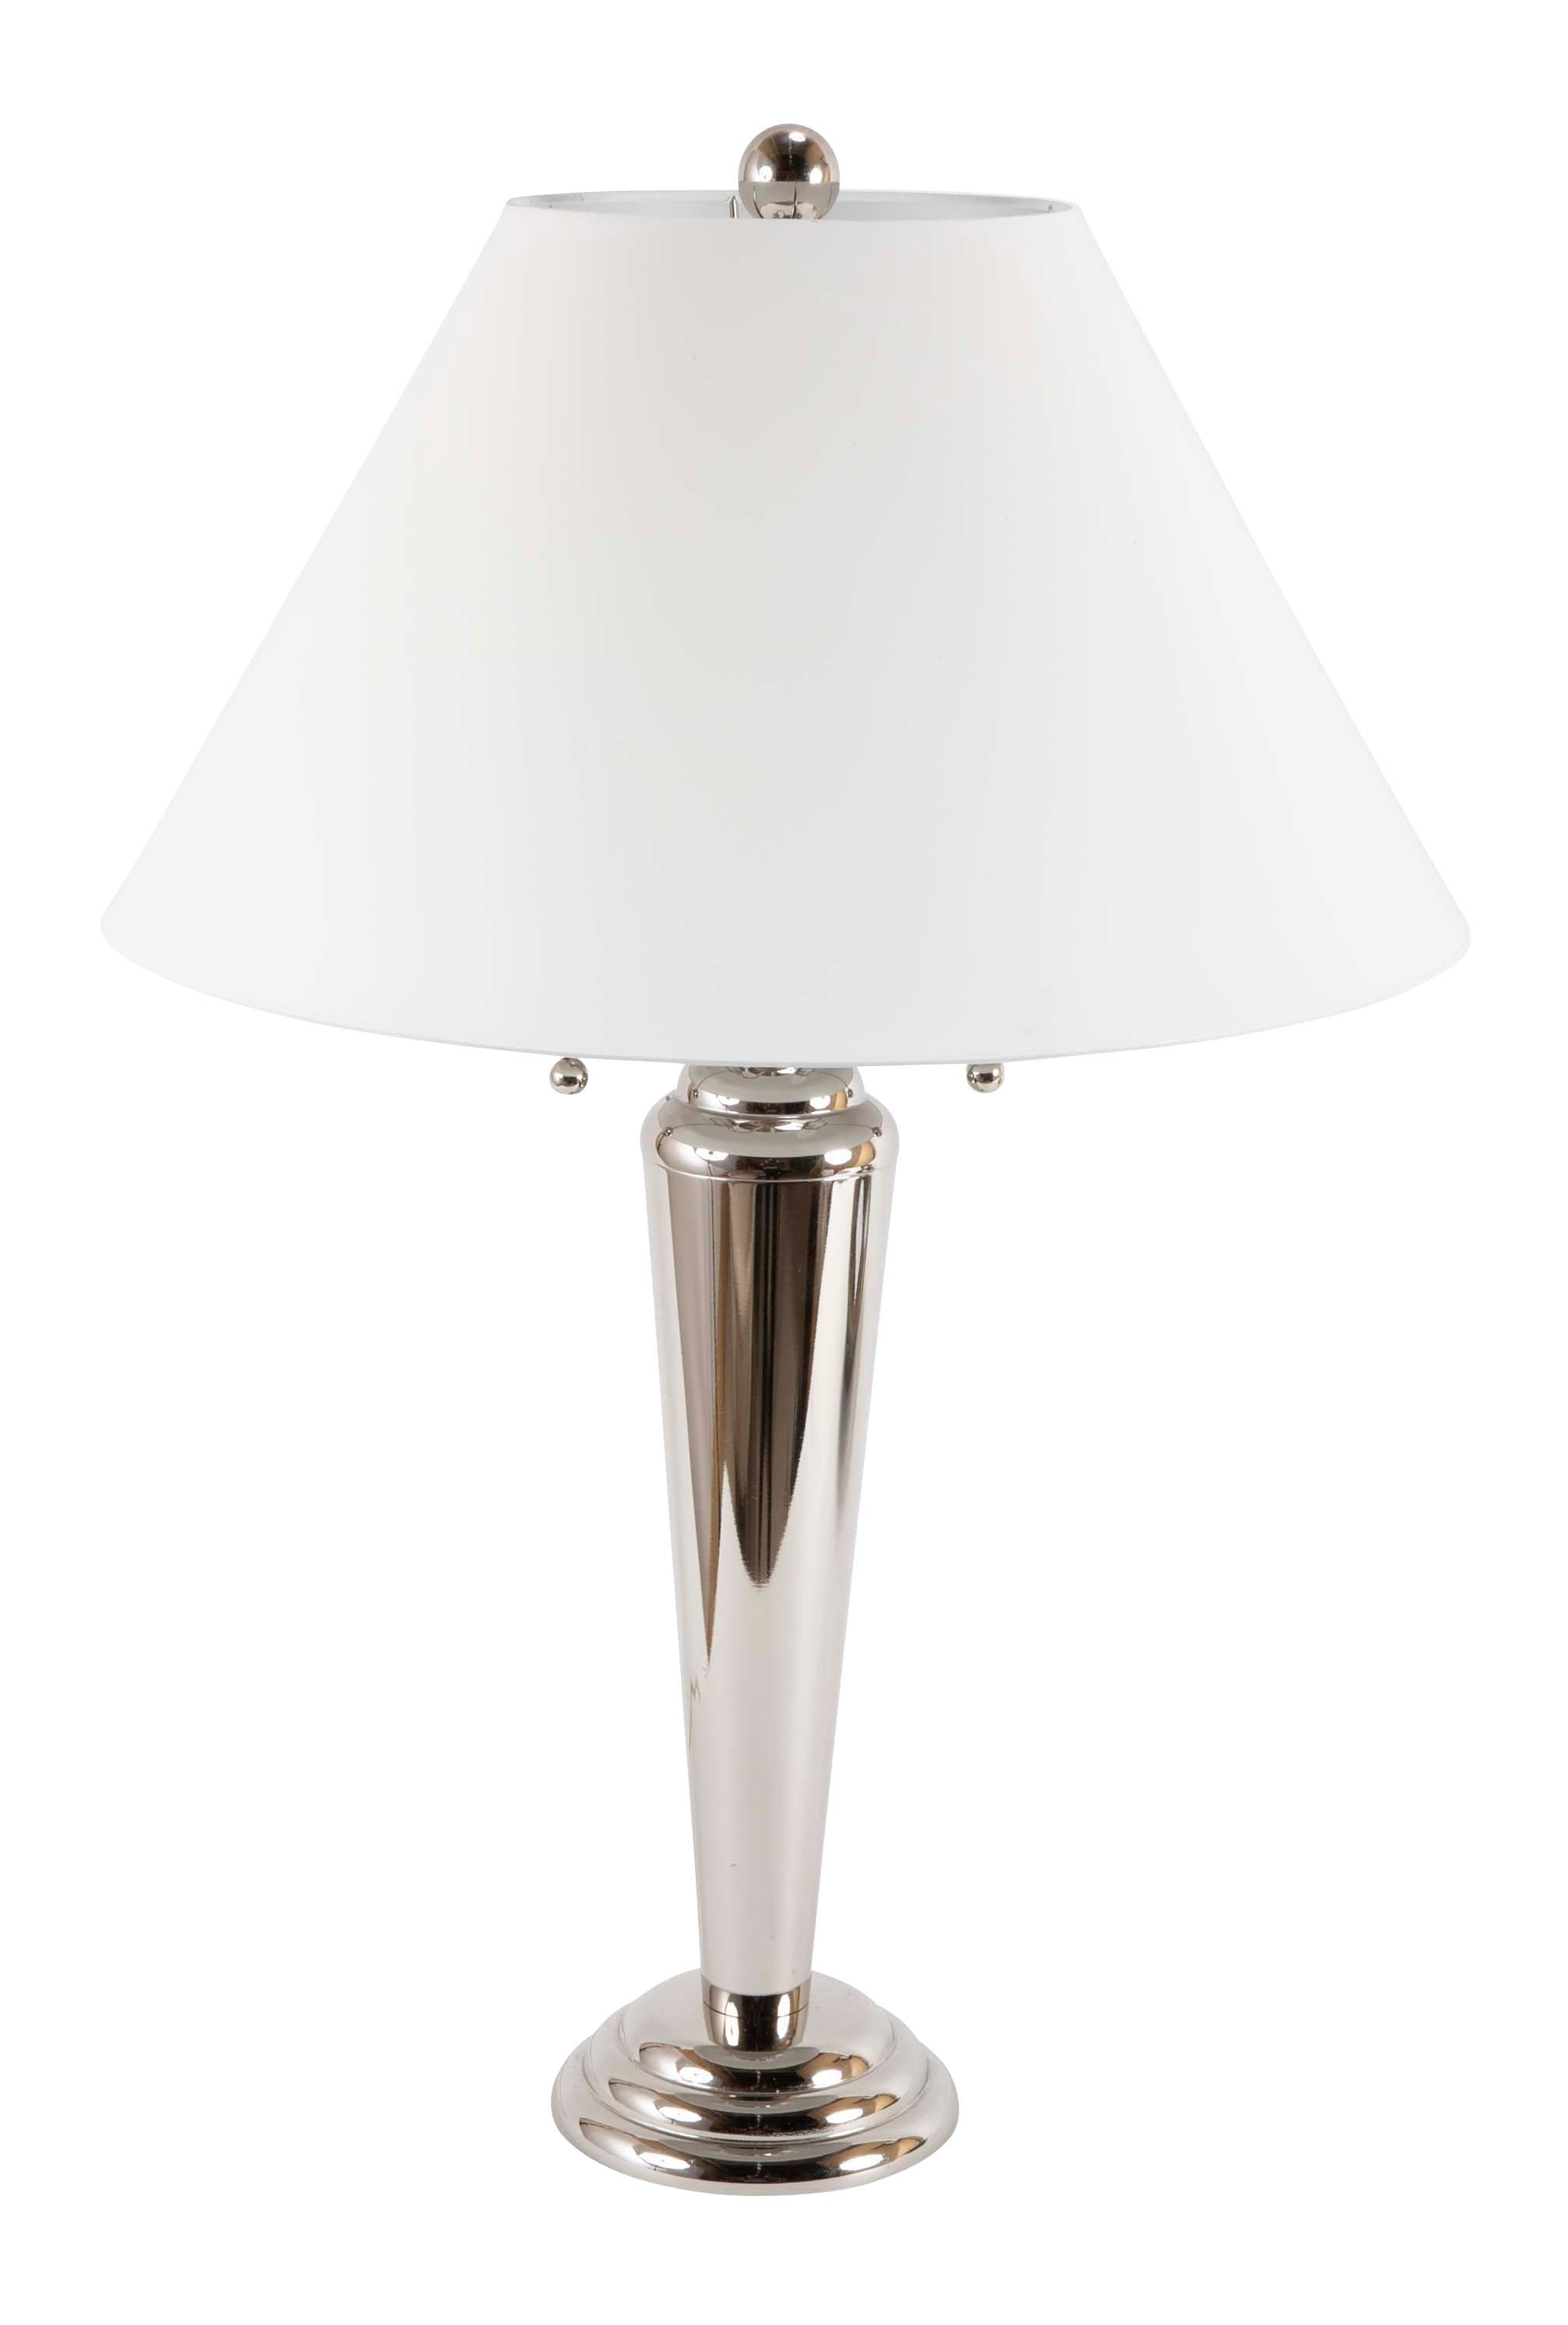 Pair of Stiffel Chrome Lamps